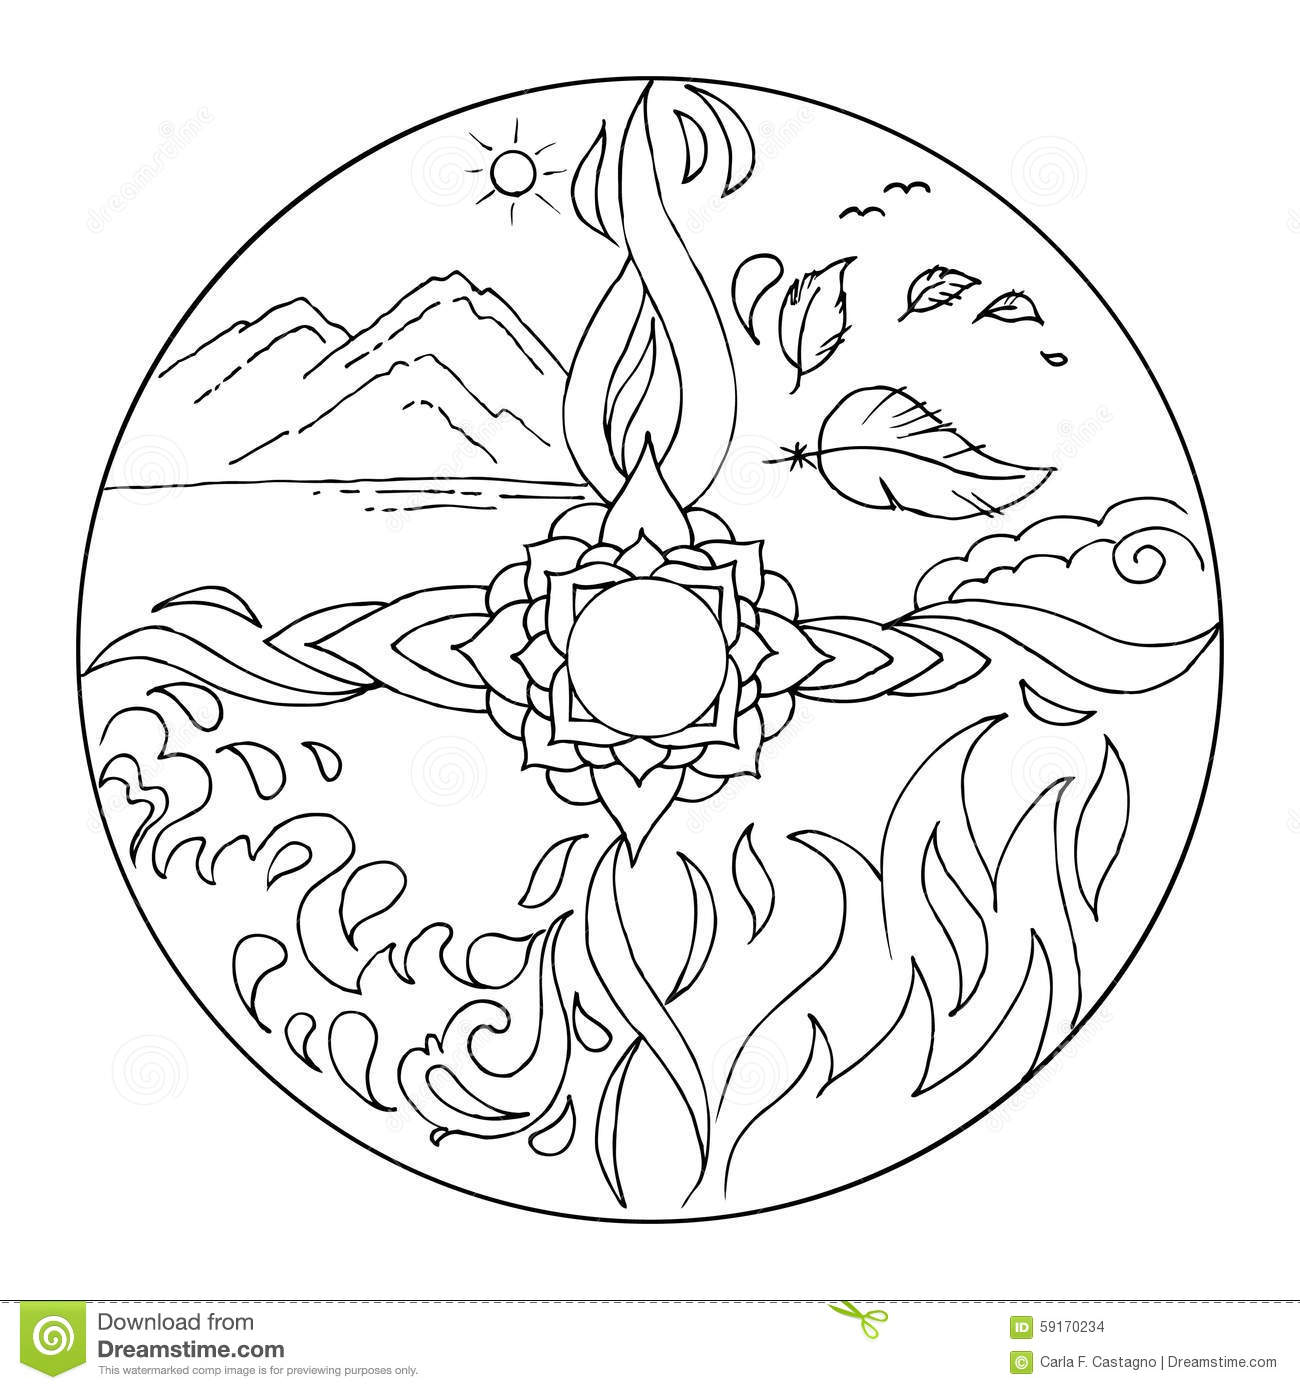 earth flower coloring pages - photo#27